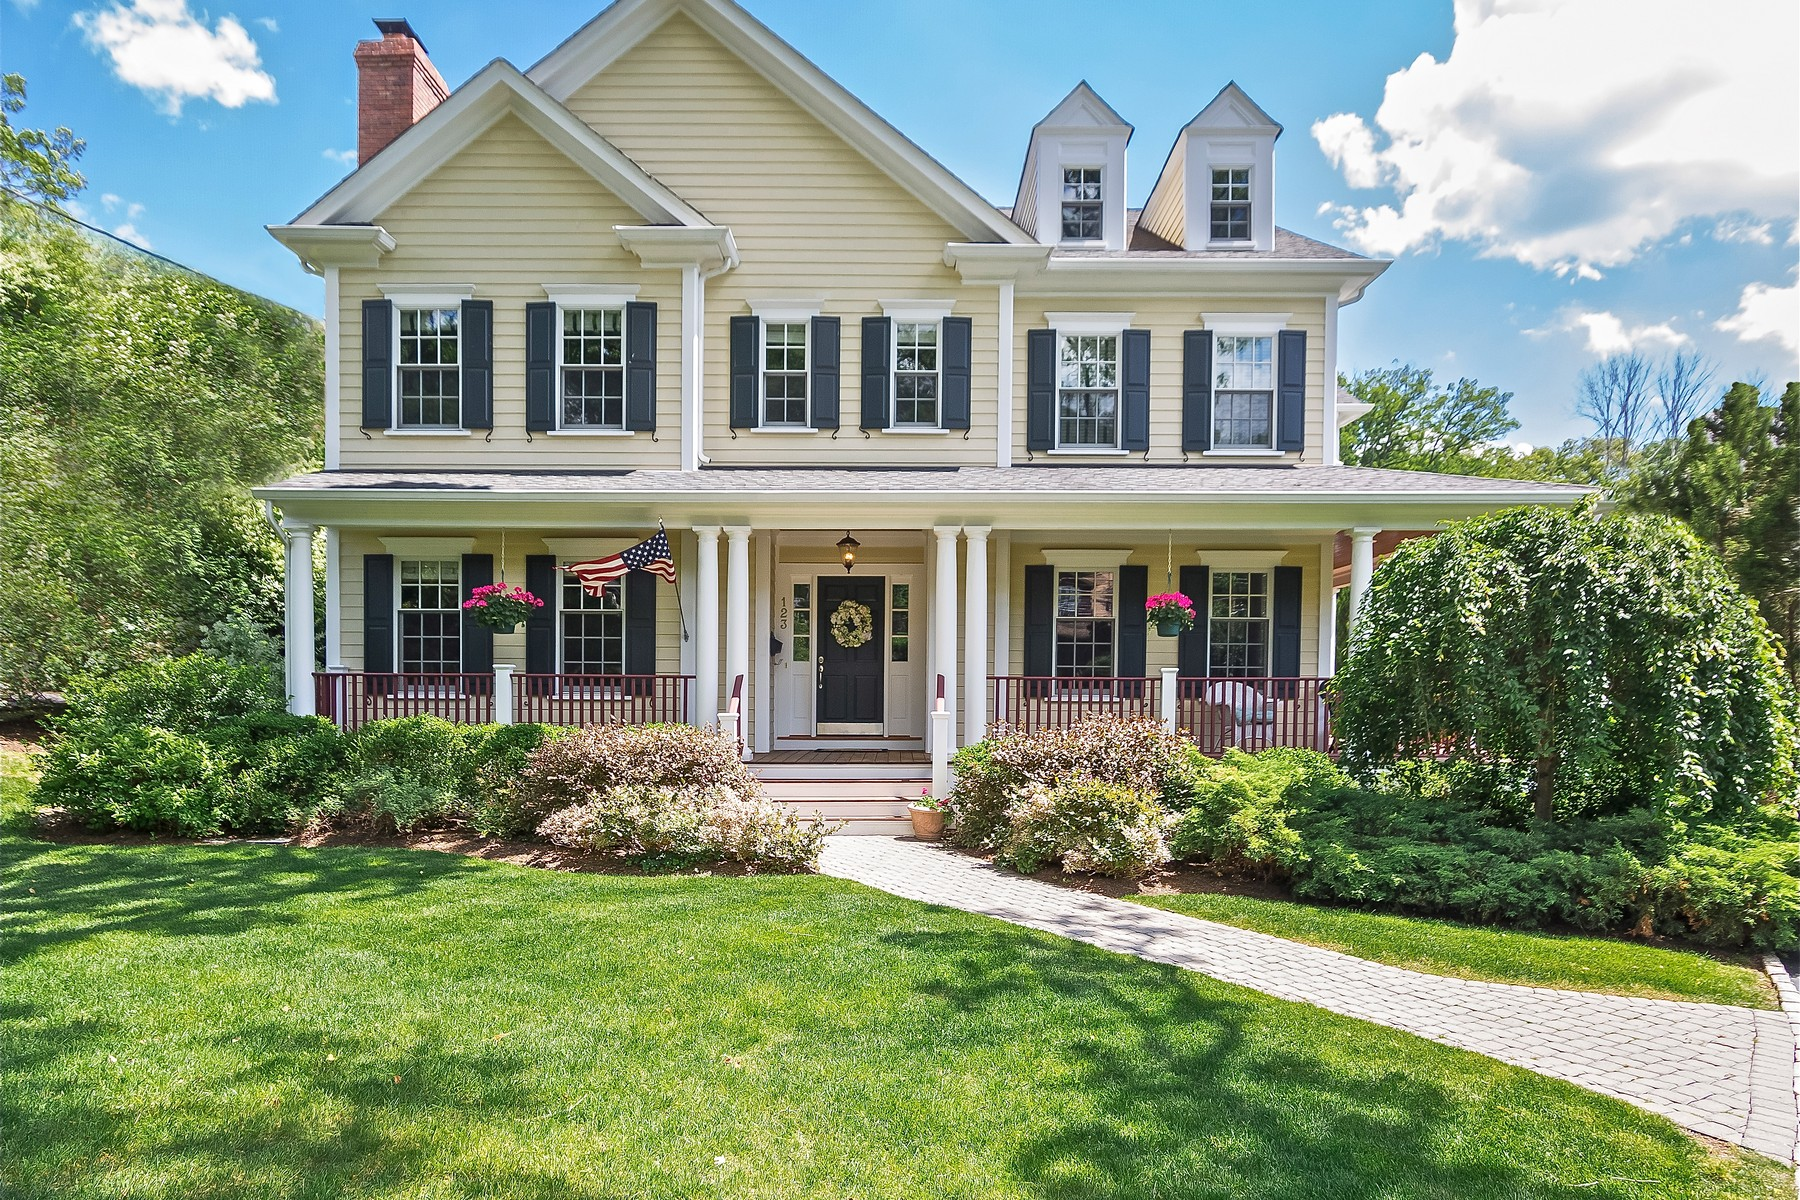 Single Family Home for Sale at Gracious Custom Colonial 123 Central Avenue Madison, New Jersey 07940 United States